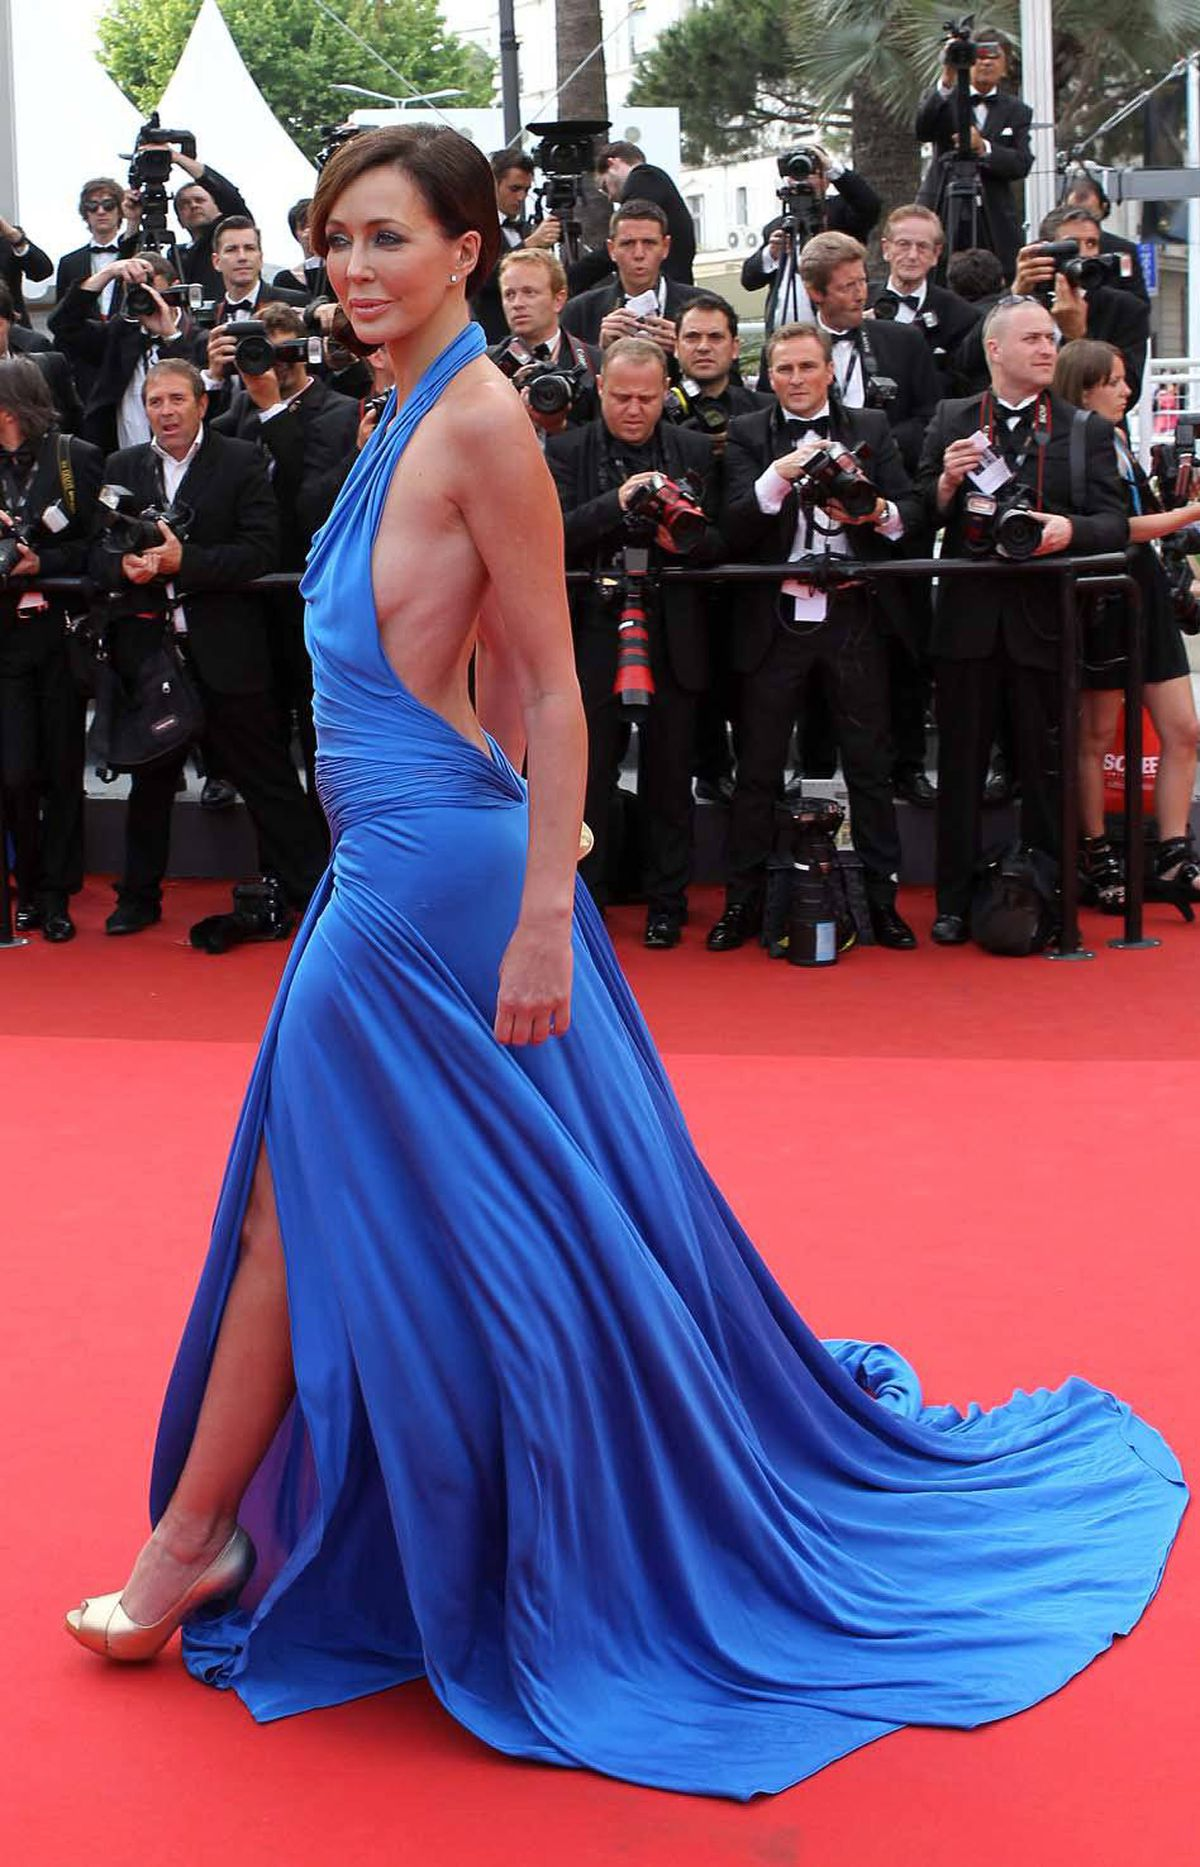 """Photographers at the Cannes Film Festival did not recognize this woman on the red carpet for the screening of """"Habemus Papam,"""" identifying her only as """"a guest,"""" yet they still felt strangely compelled to take her picture."""